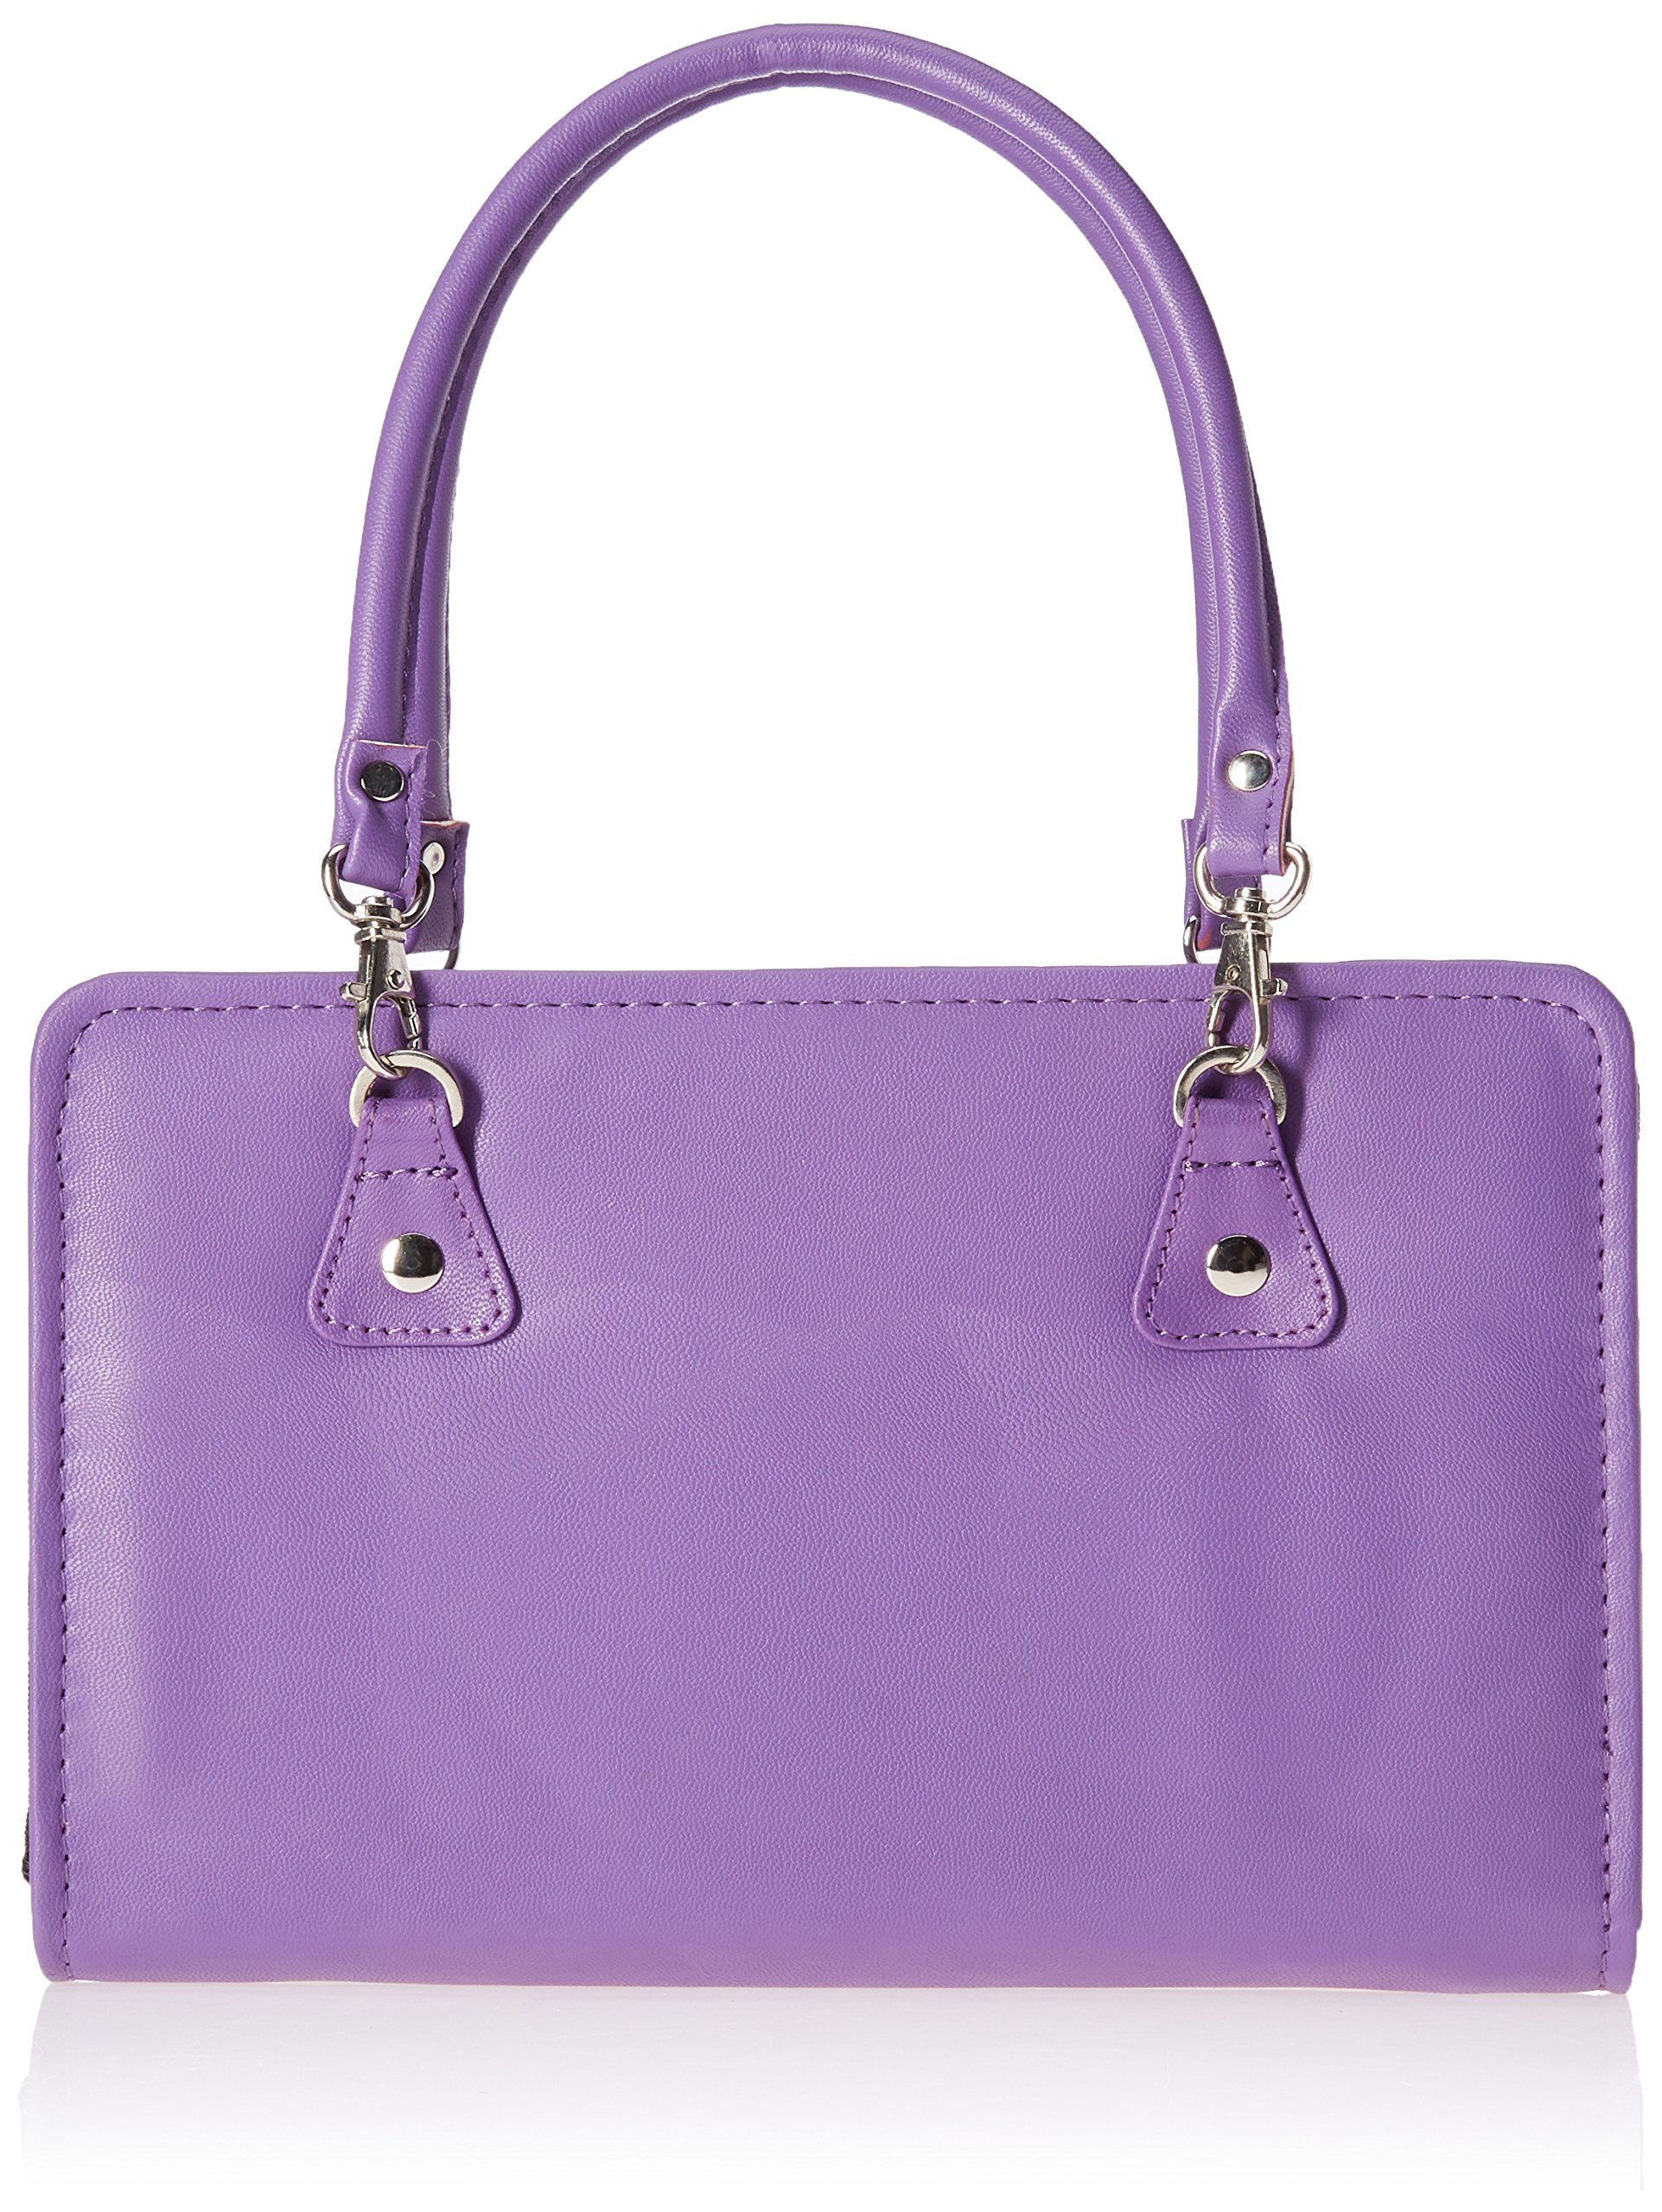 Knitter's Pride Thames Faux Leather Bag, Purple by Knitter's Pride (Image #1)